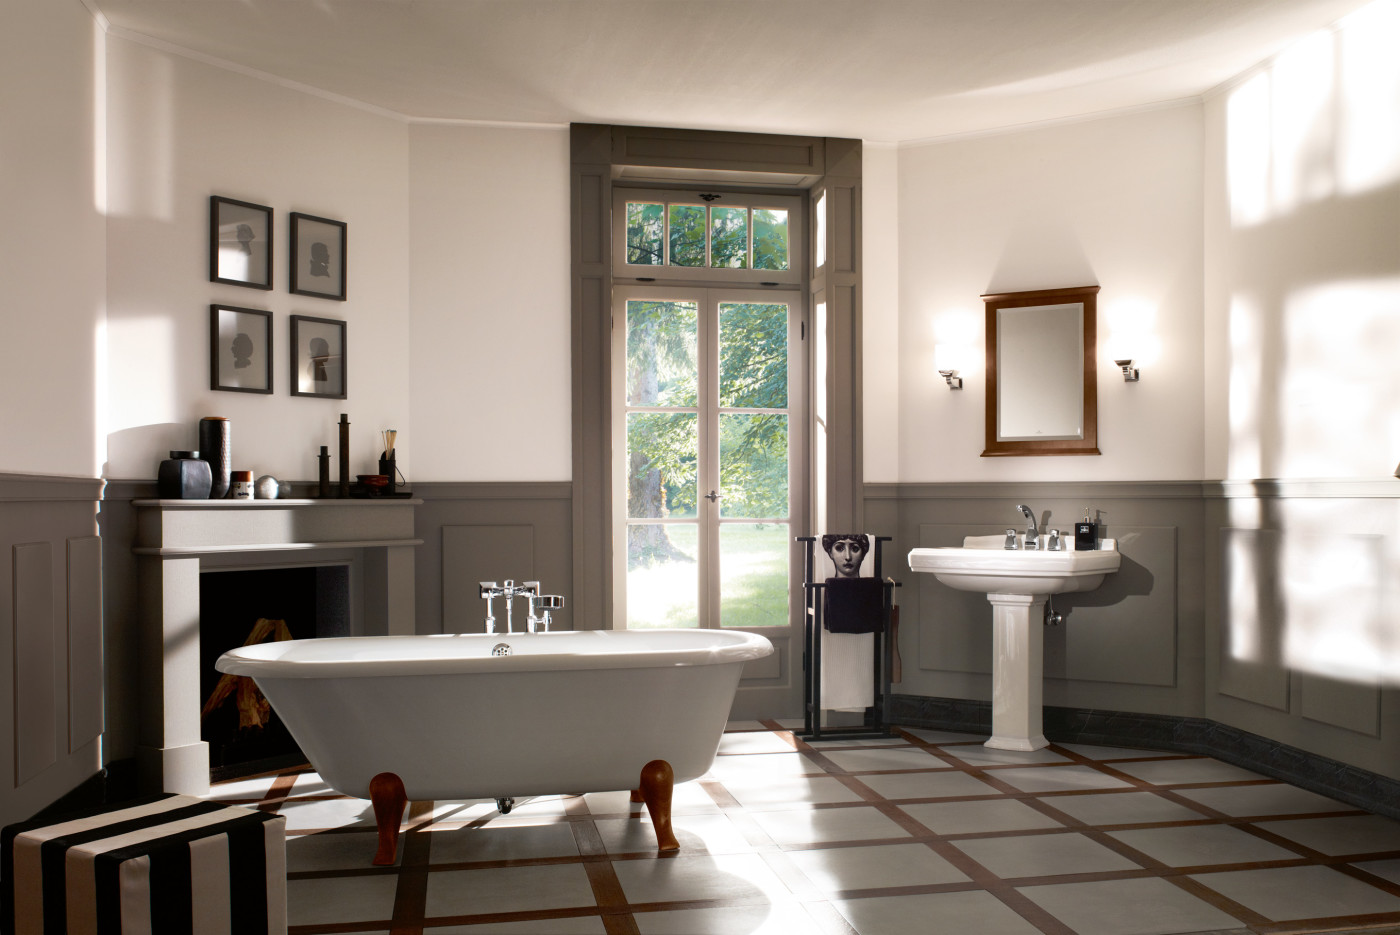 freistehende badewanne hommage von villeroy boch. Black Bedroom Furniture Sets. Home Design Ideas